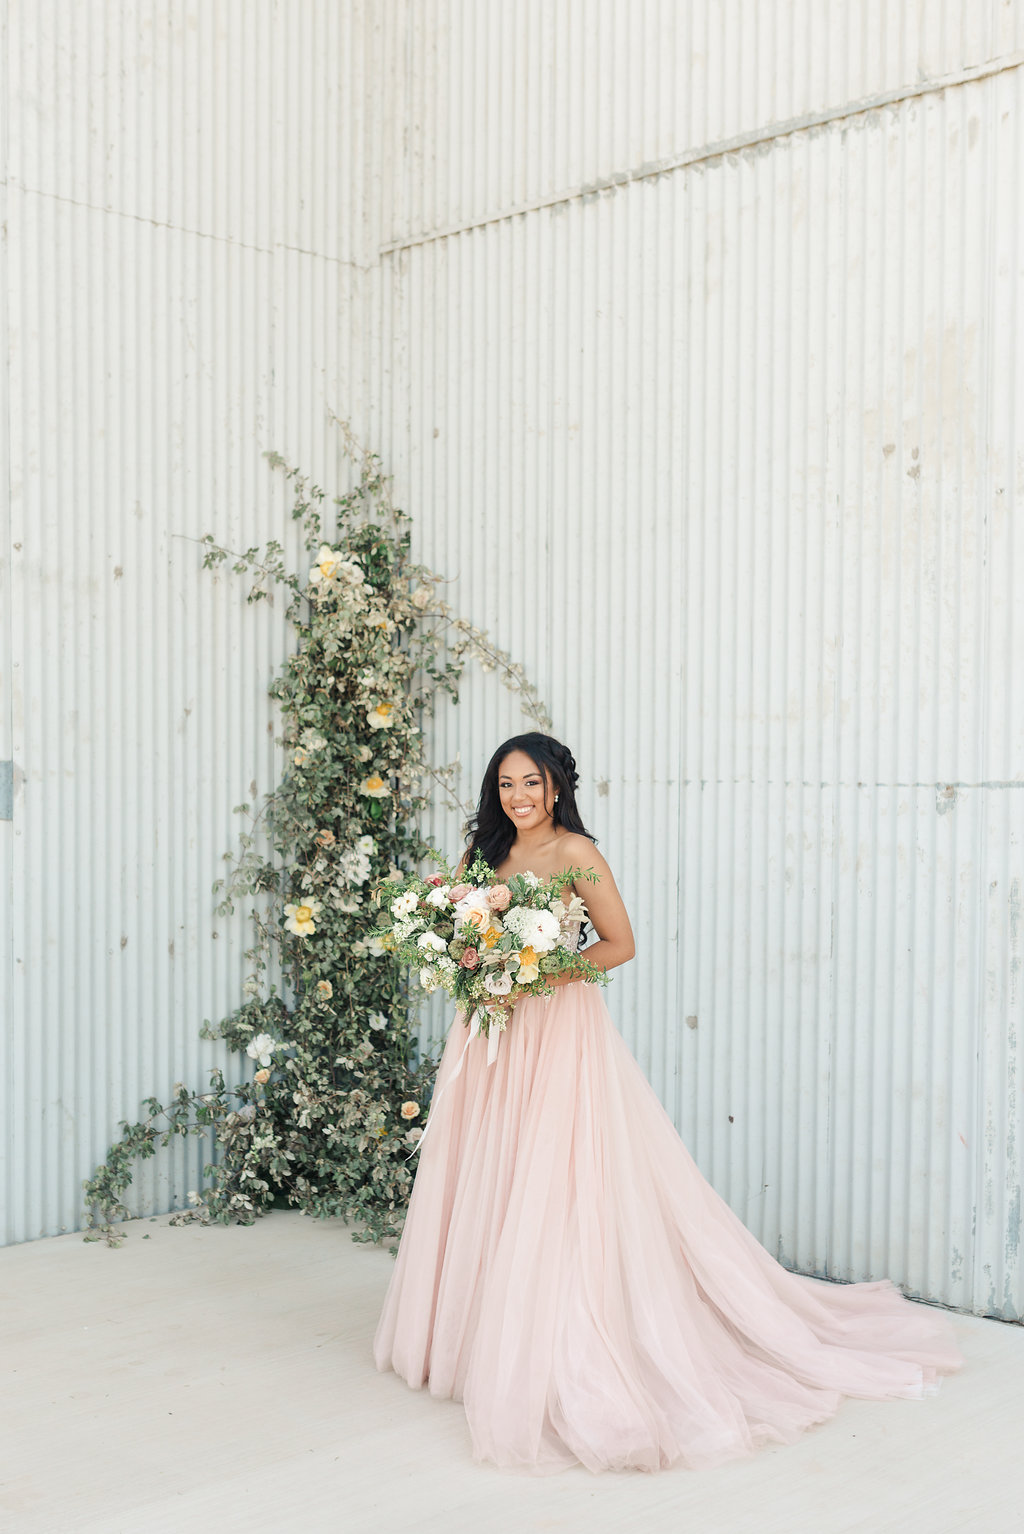 blush wedding dress the gin industrial wedding venue epoch co college station wedding coordinators